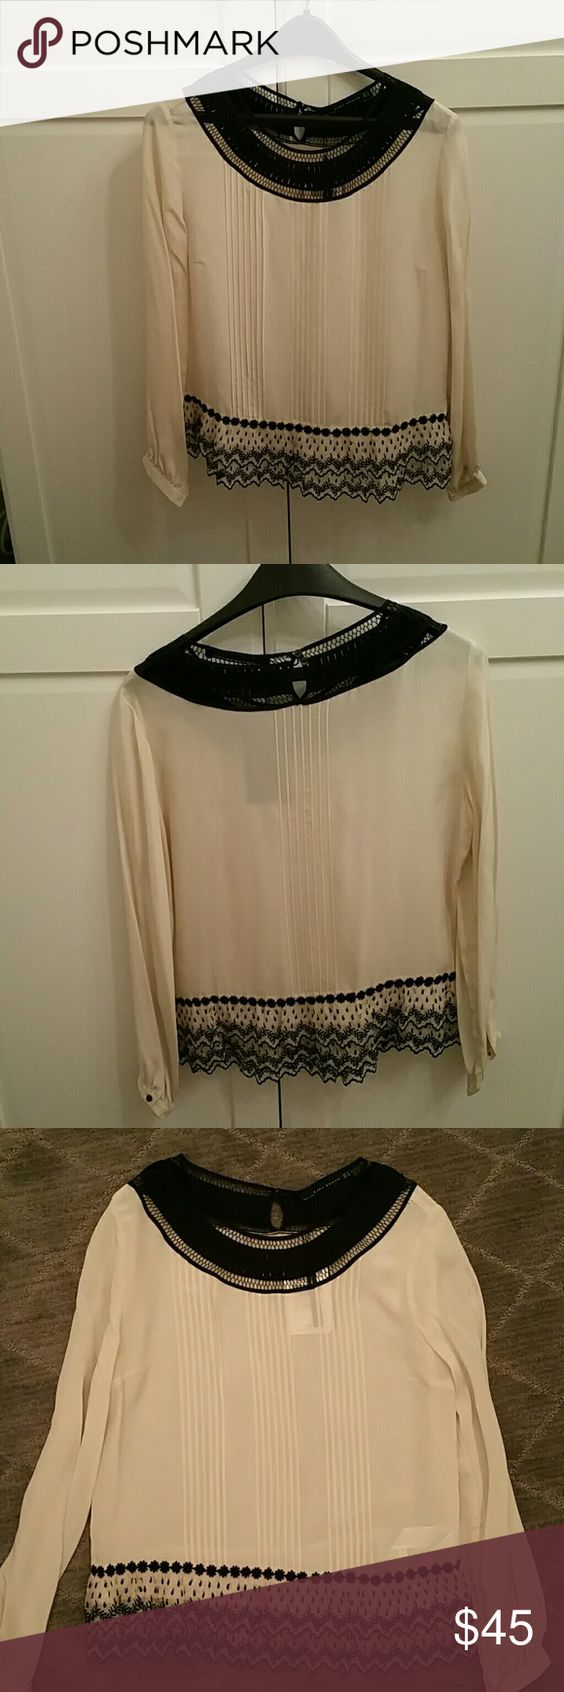 Zara ivory and black lace trim silk blouse Brand new silk blouse with a romantic lace trim and detailed neck line Zara Tops Blouses